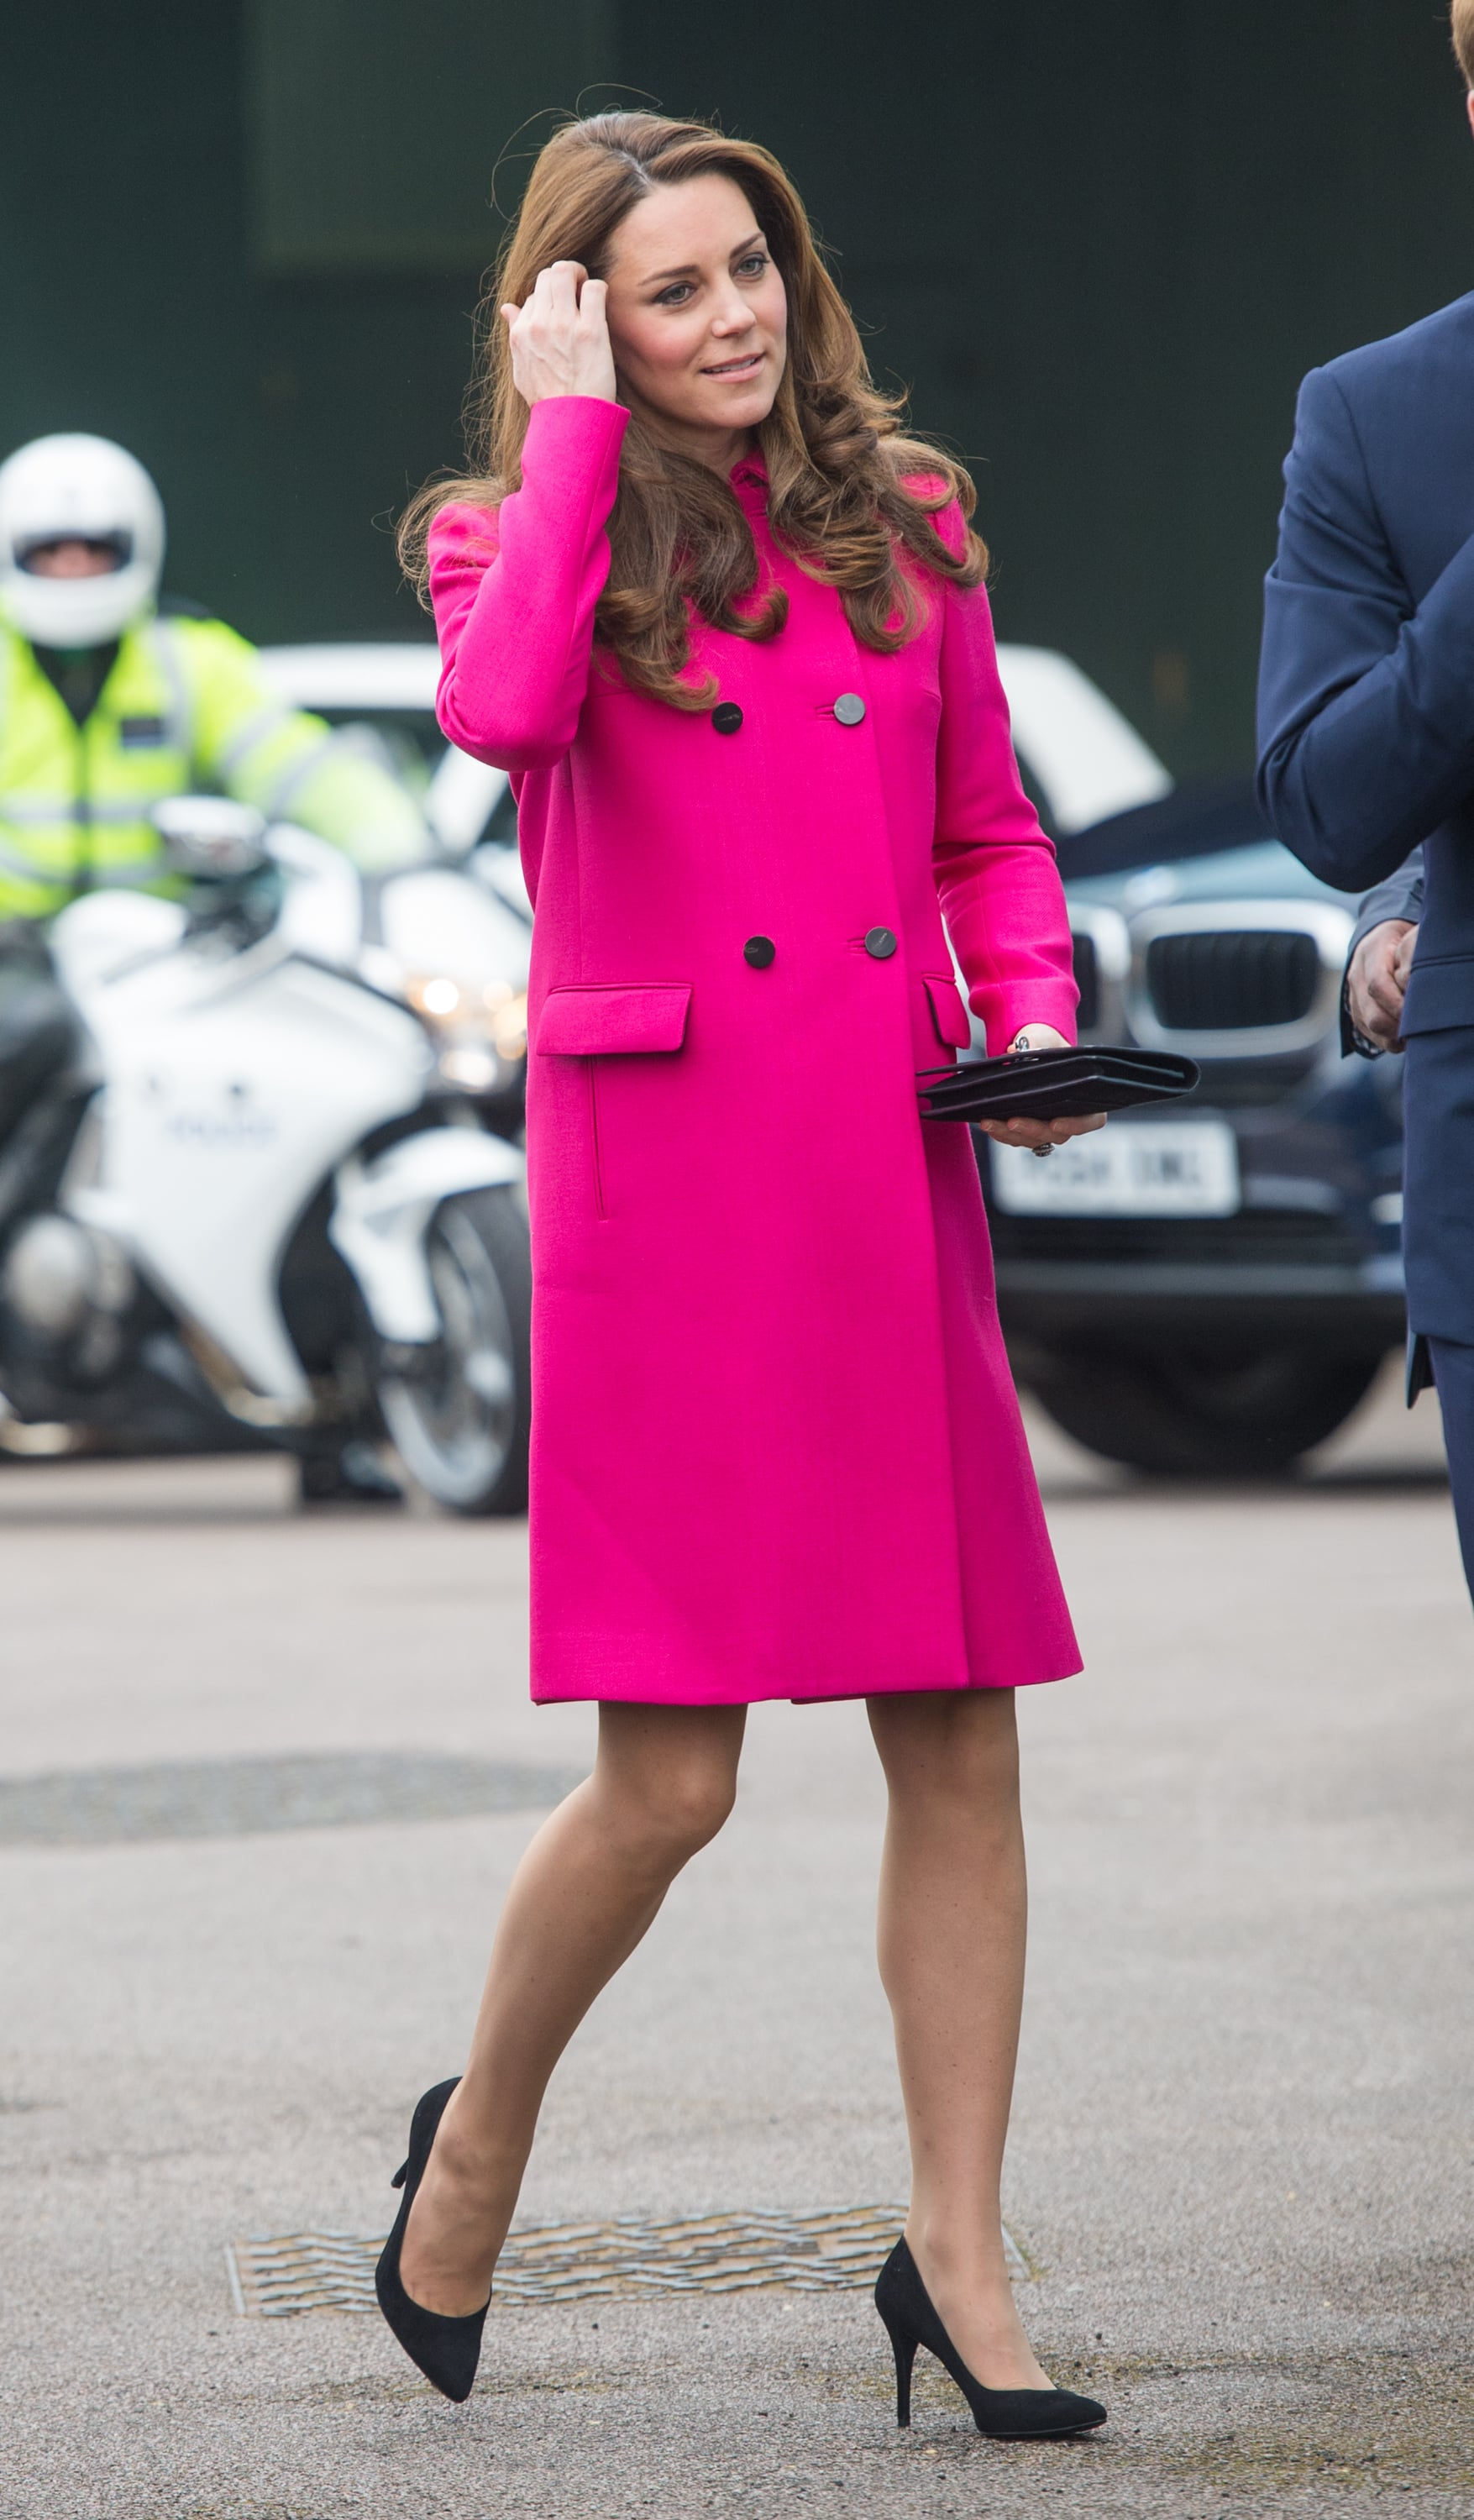 d98dc3409c7 Kate let her fuchsia coat speak for itself by selecting simple, | Is ...